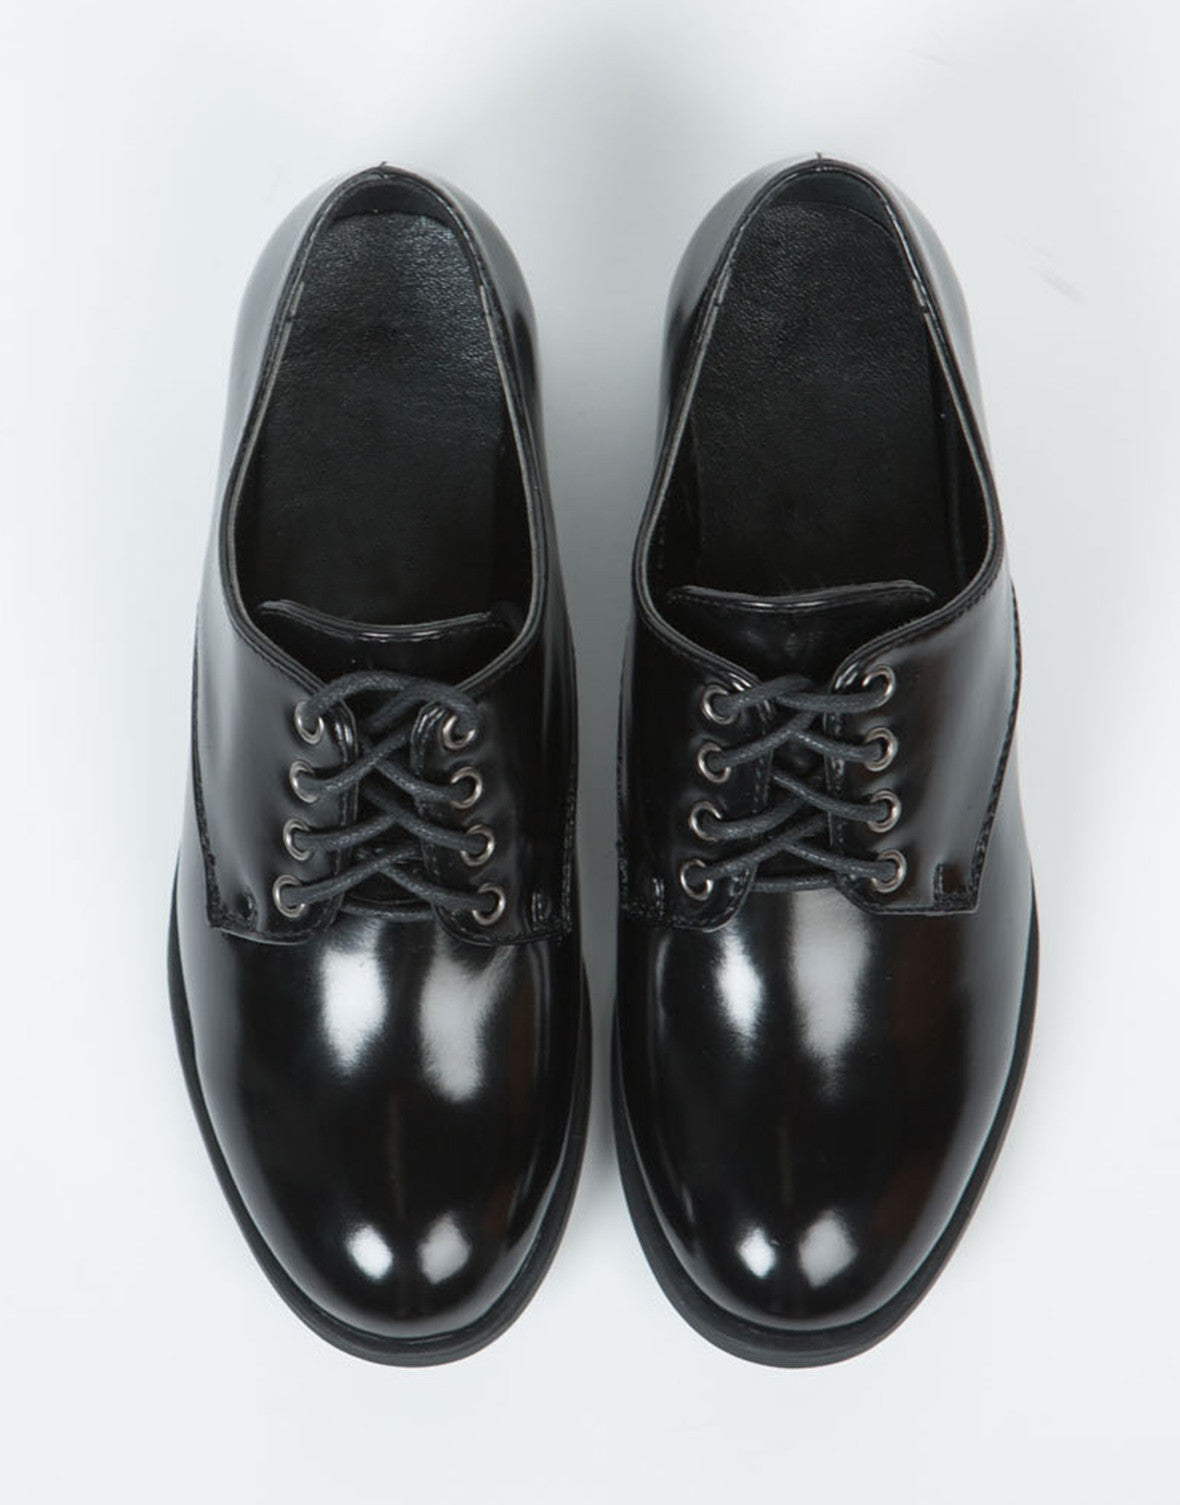 Top View of Laced Up Oxfords